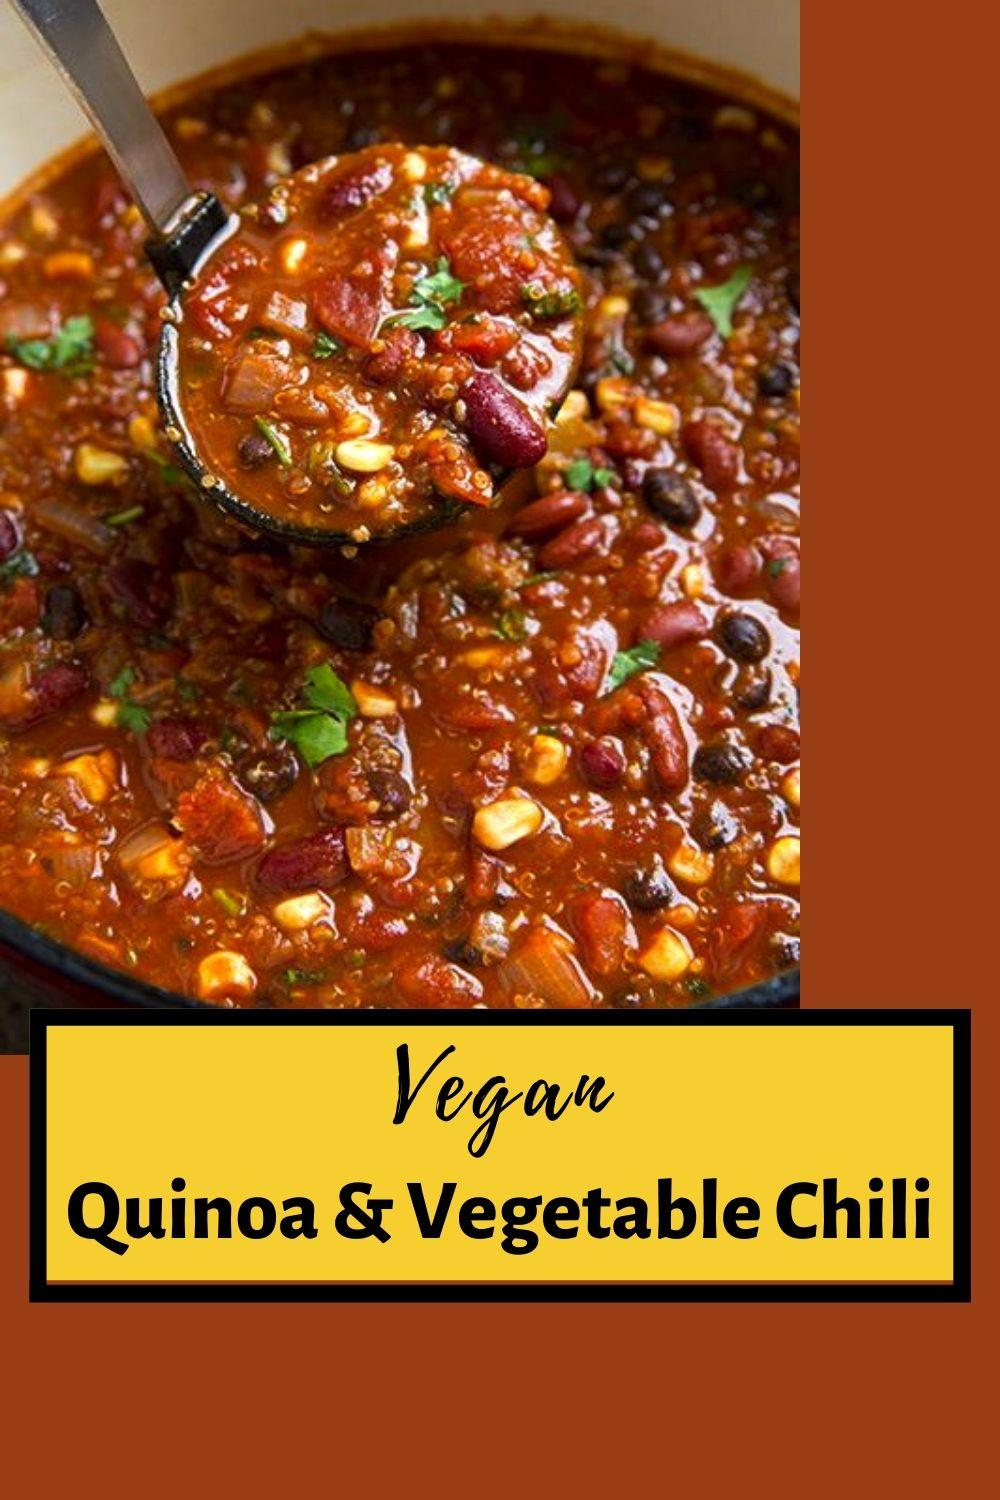 Vegan Quinoa & Vegetable Chili